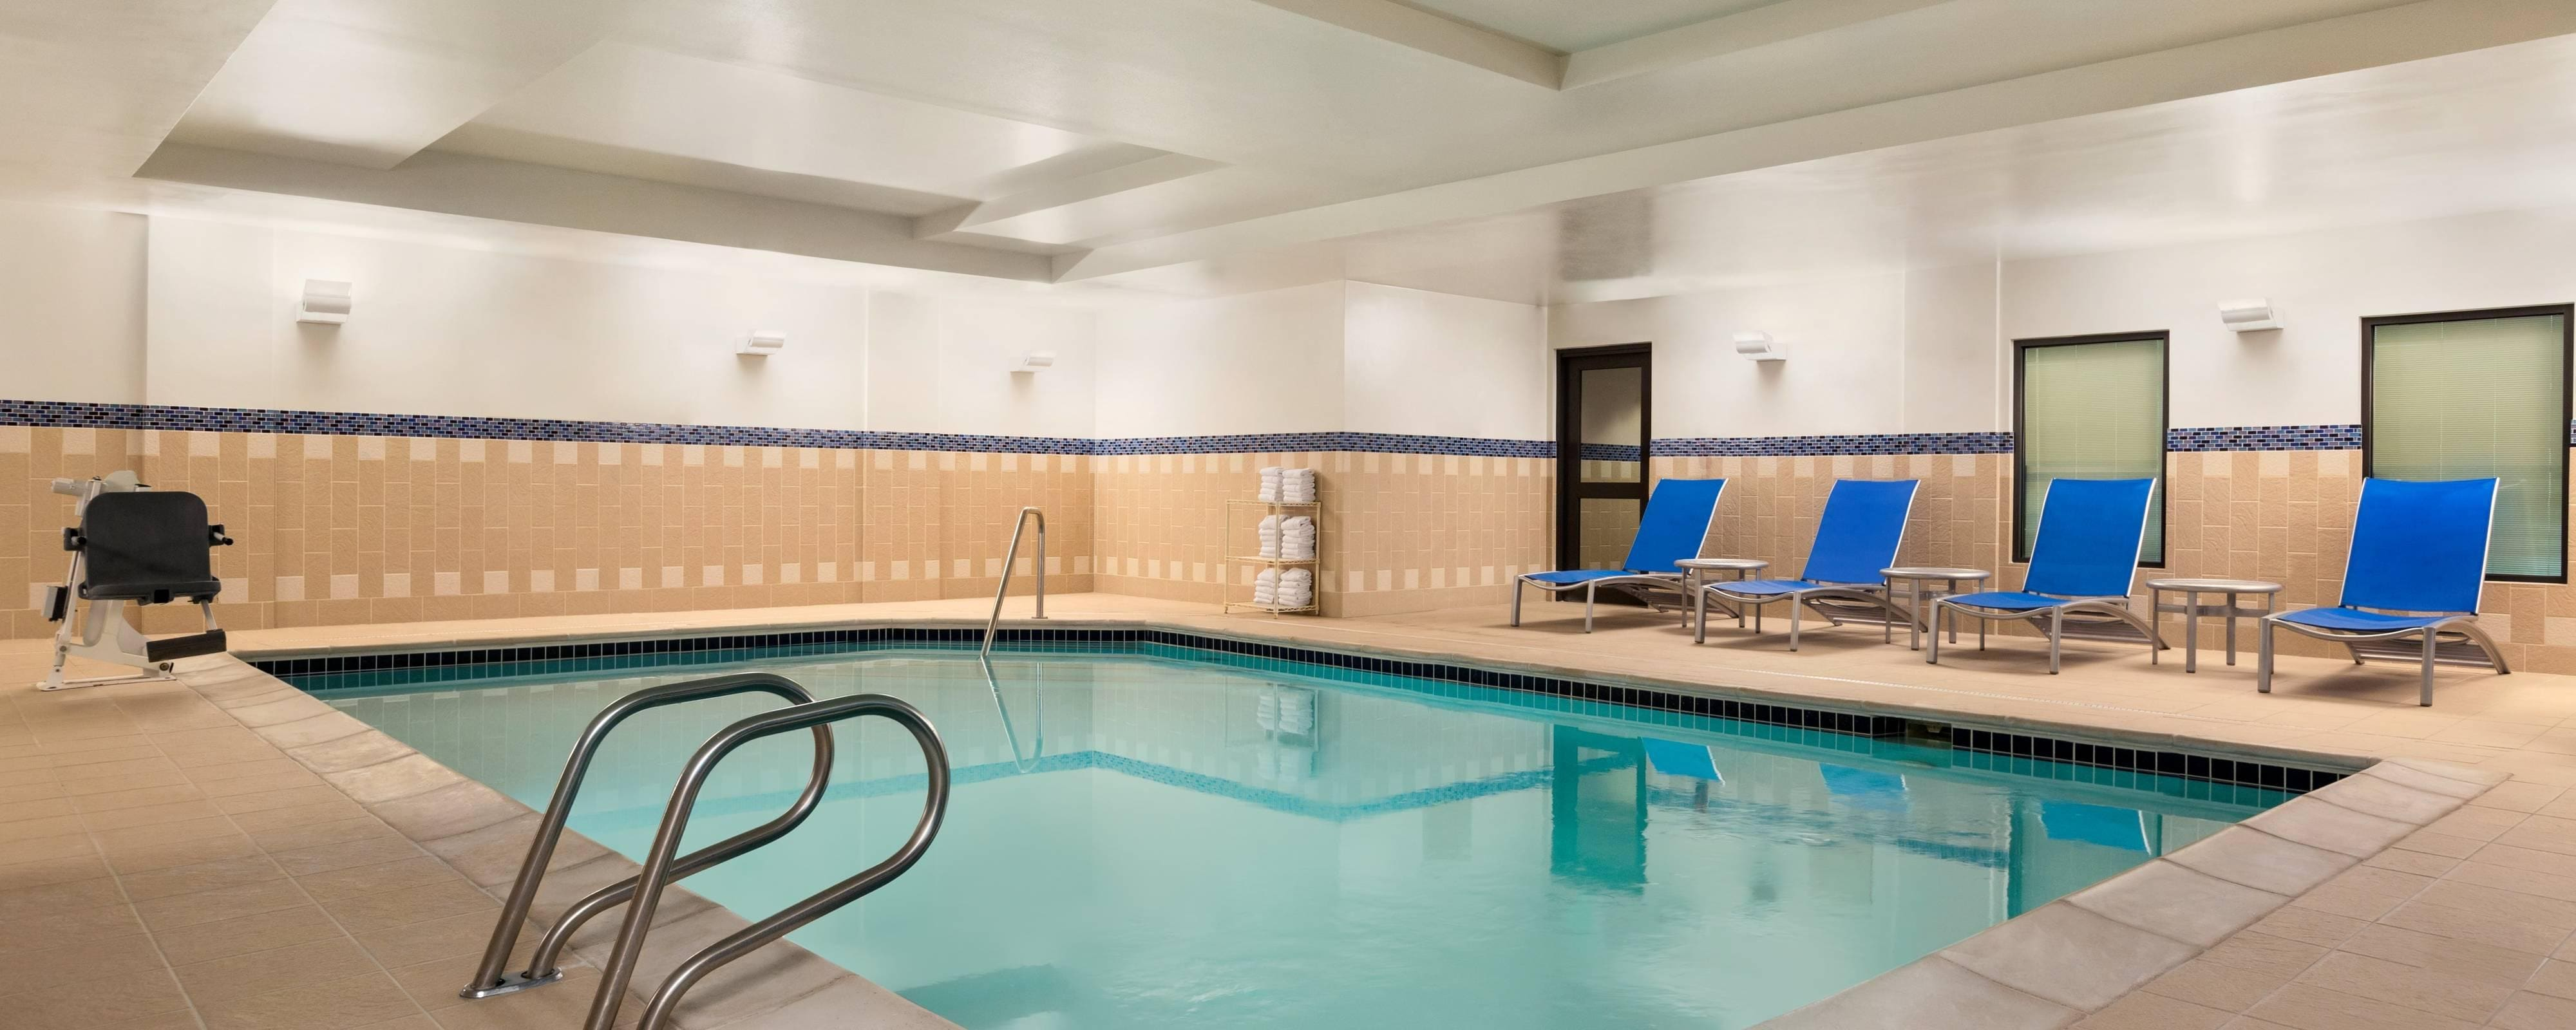 Denver Hotels With Indoor Pool Towneplace Suites Denver Airport At Gateway